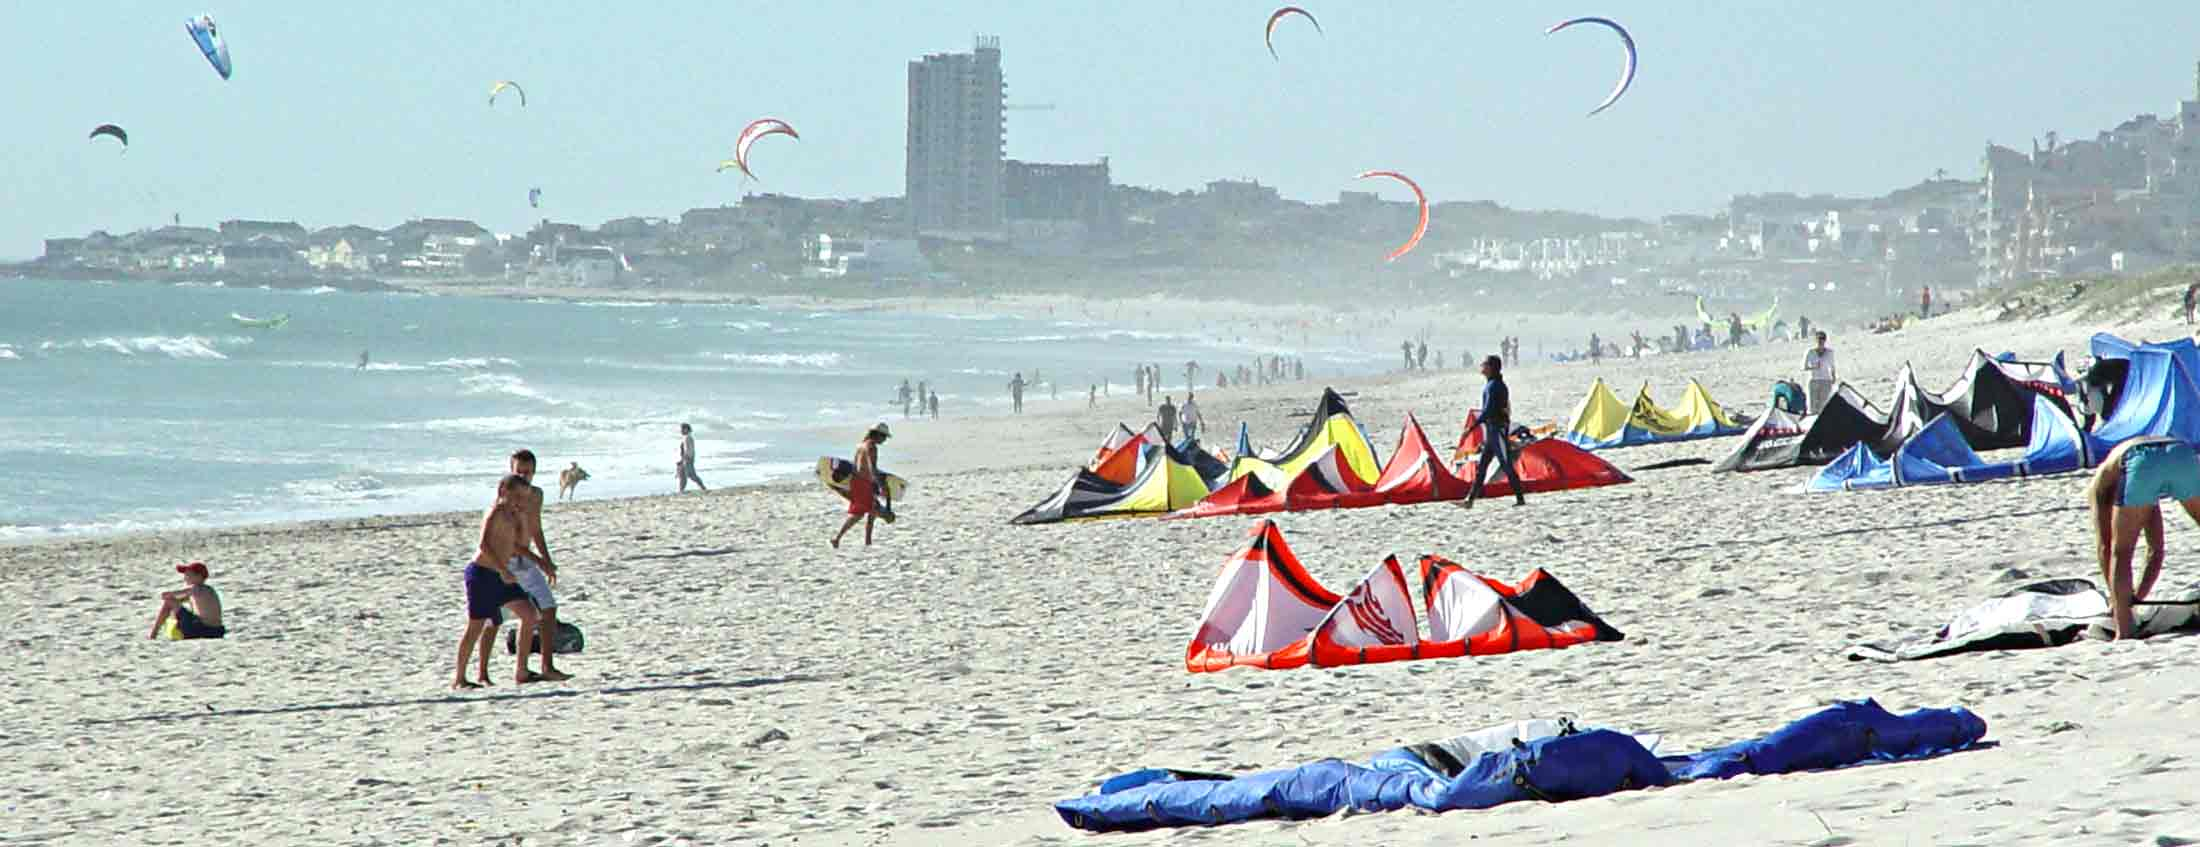 big bay kite surfing